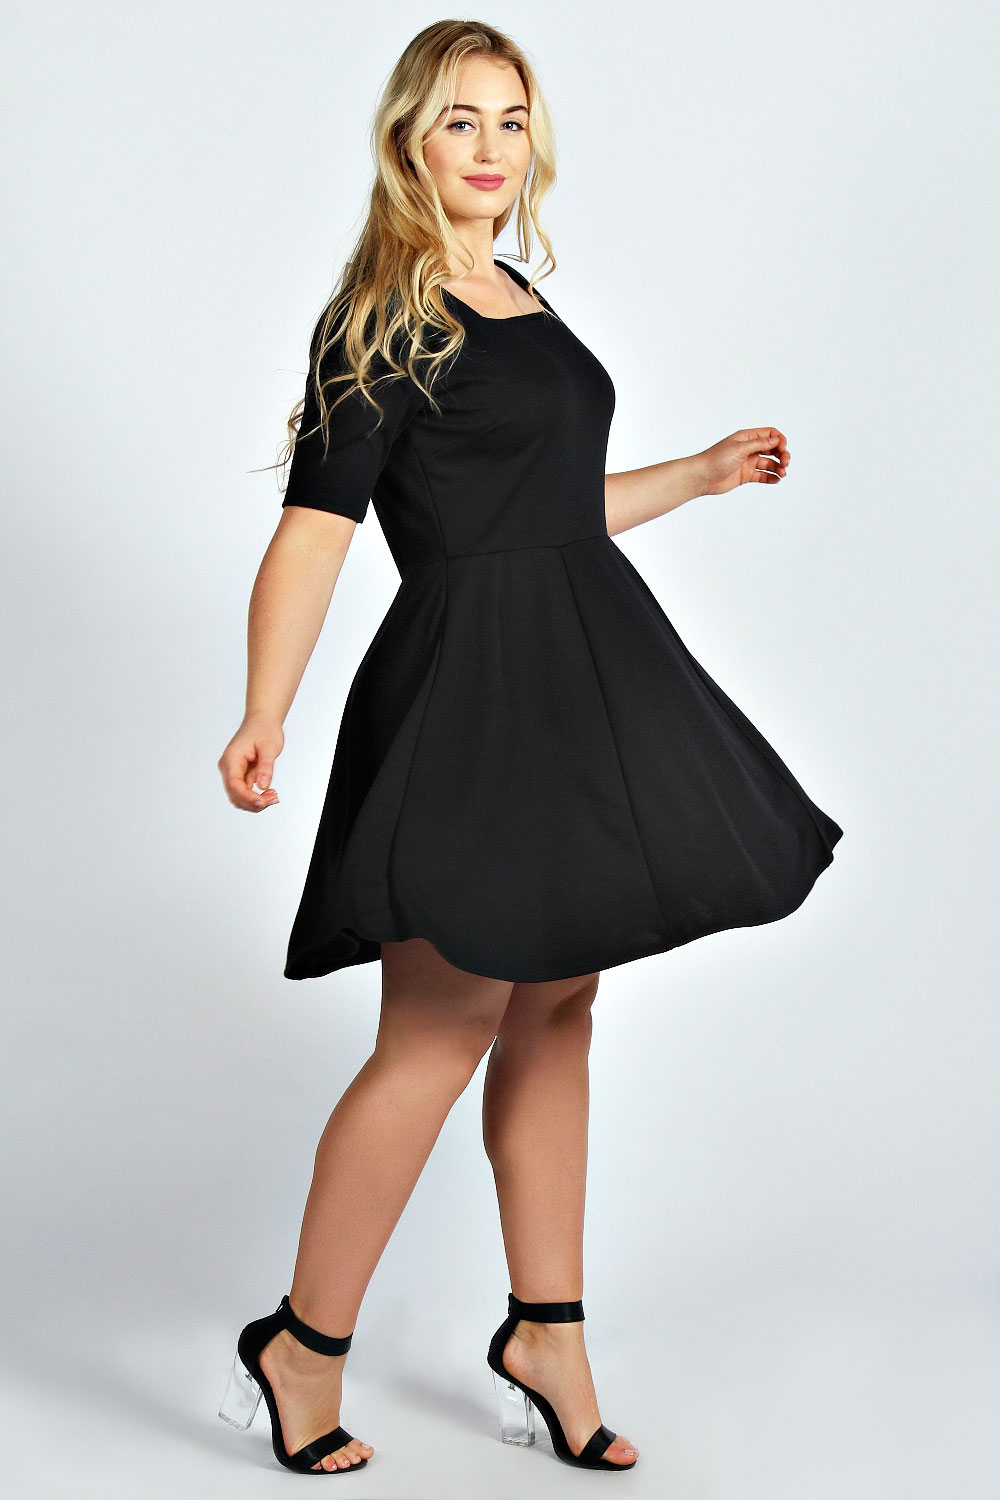 Our women's fit and flare dresses have a fitted bodice and full skirt, making it a Day to Night Looks· Style for Your Life· High Fashion for Everyday· Free Shipping $50+Styles: Dresses, Flare, Midi, Denim, Casual.